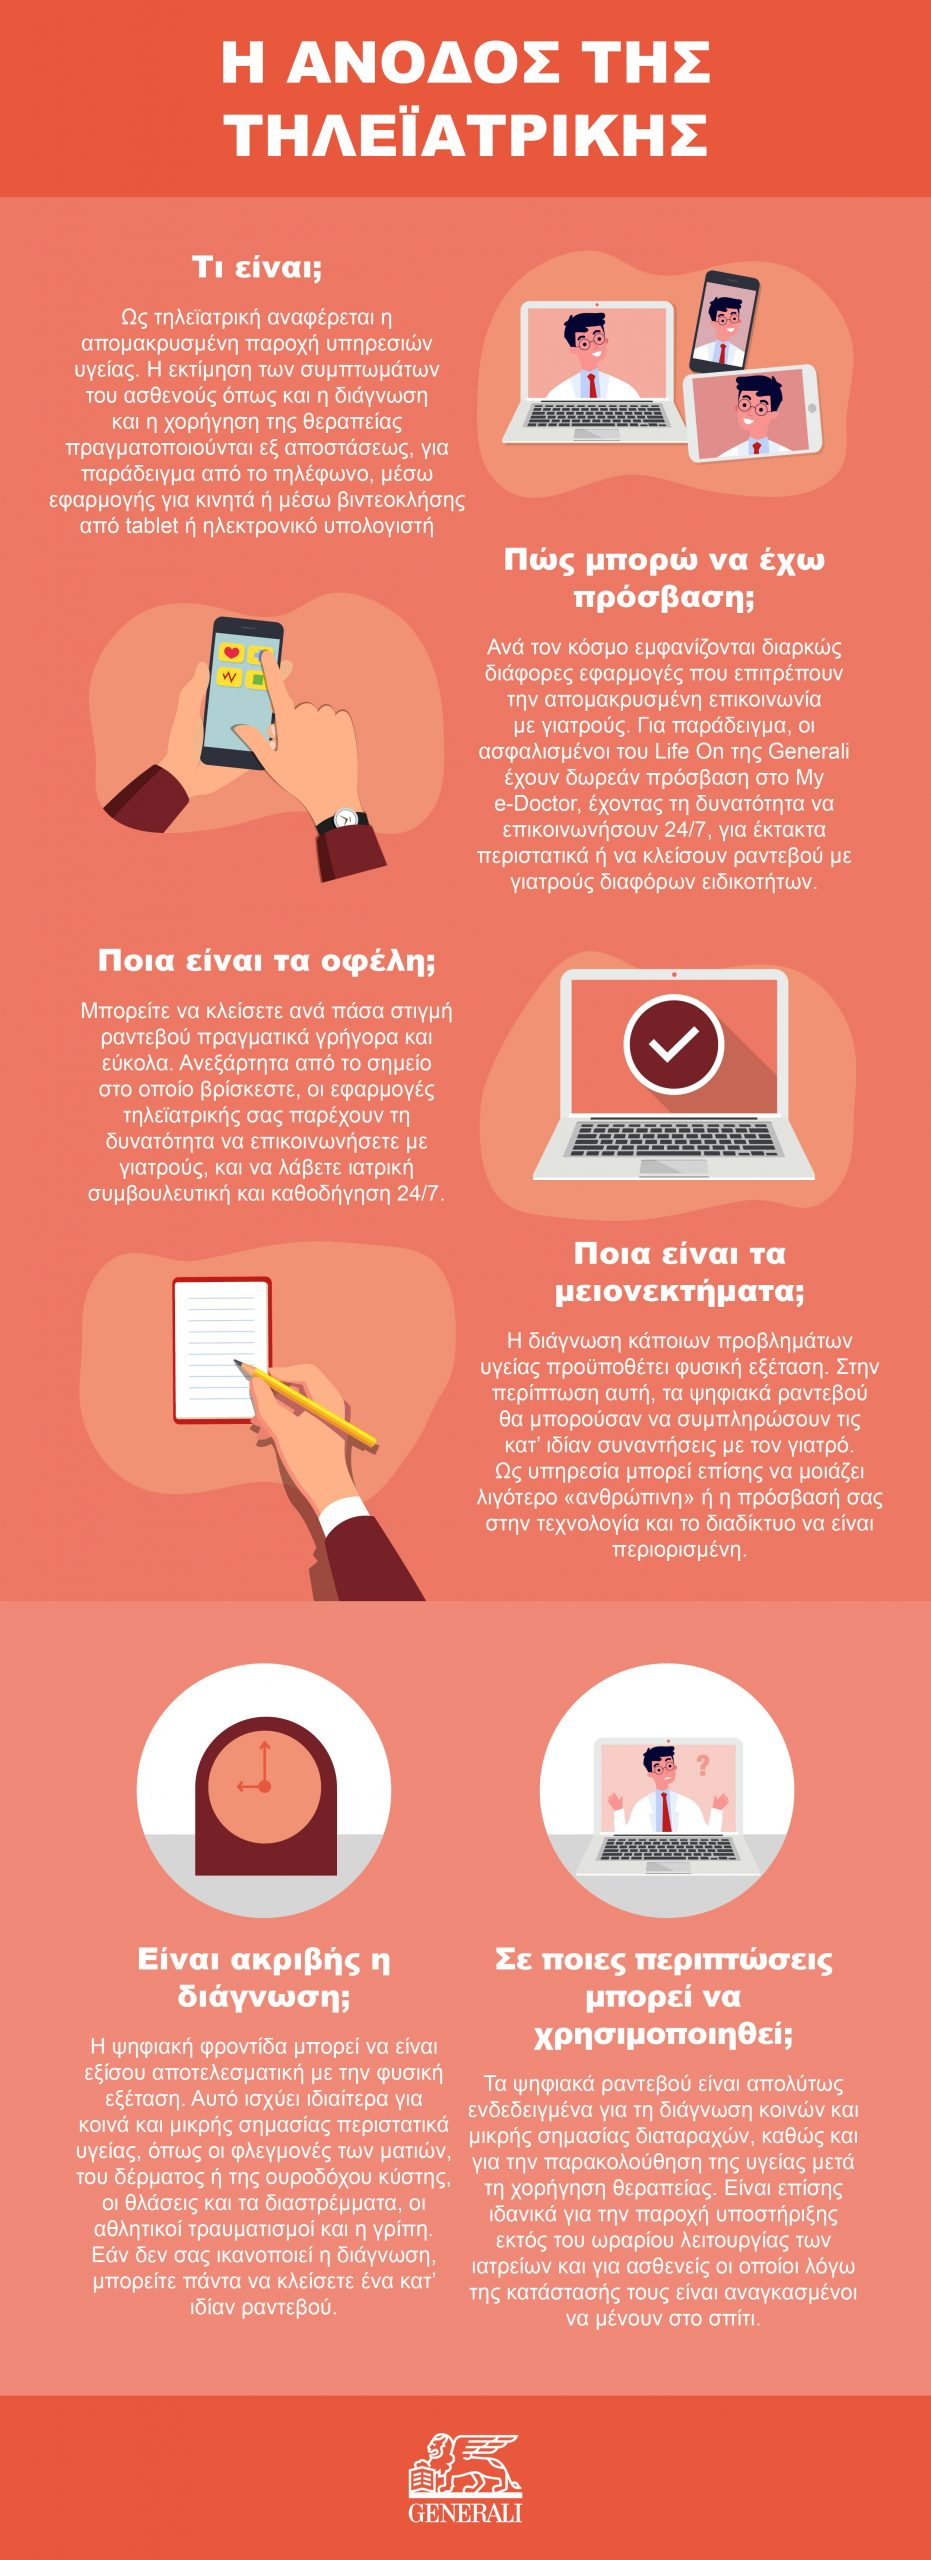 Generali_The Rise in Virtual Healthcare_Infographic_Greece_15.06.21 (4).jpg